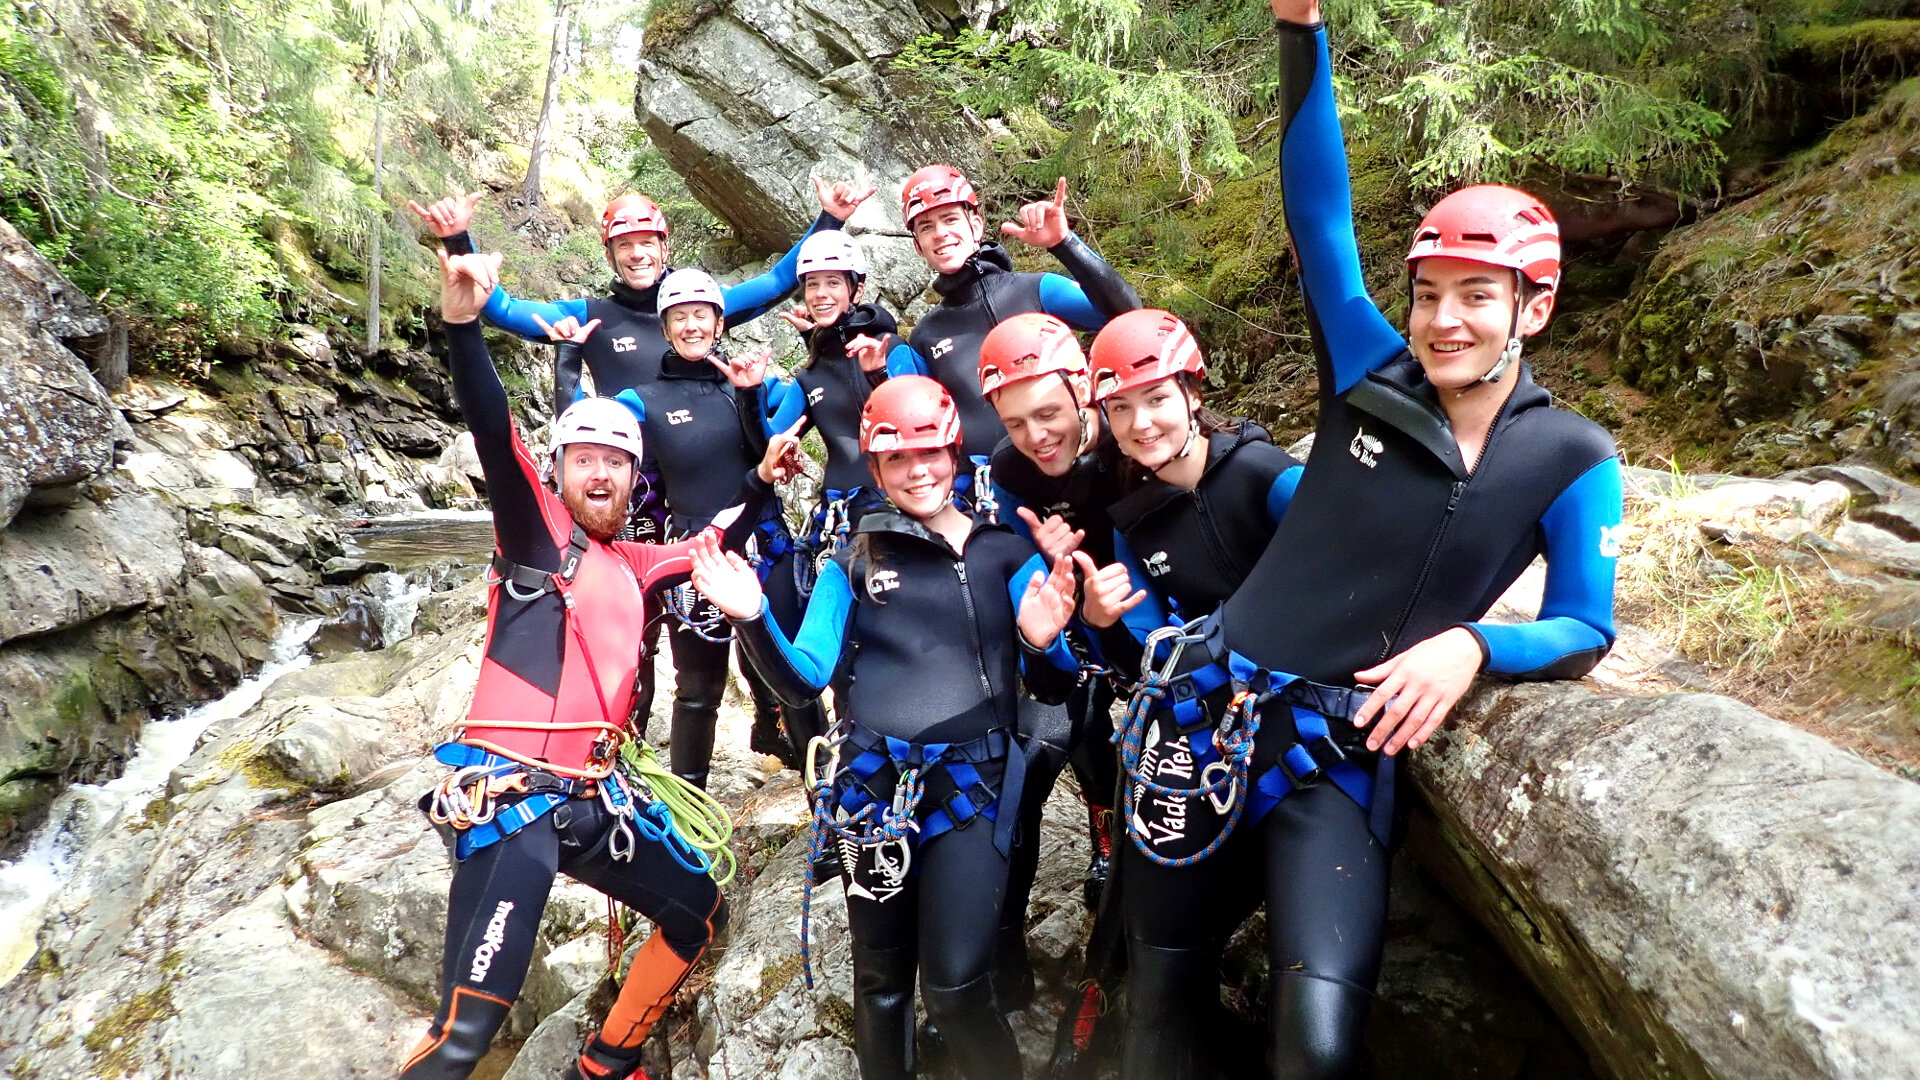 Group of gorge walkers celebrating after trip